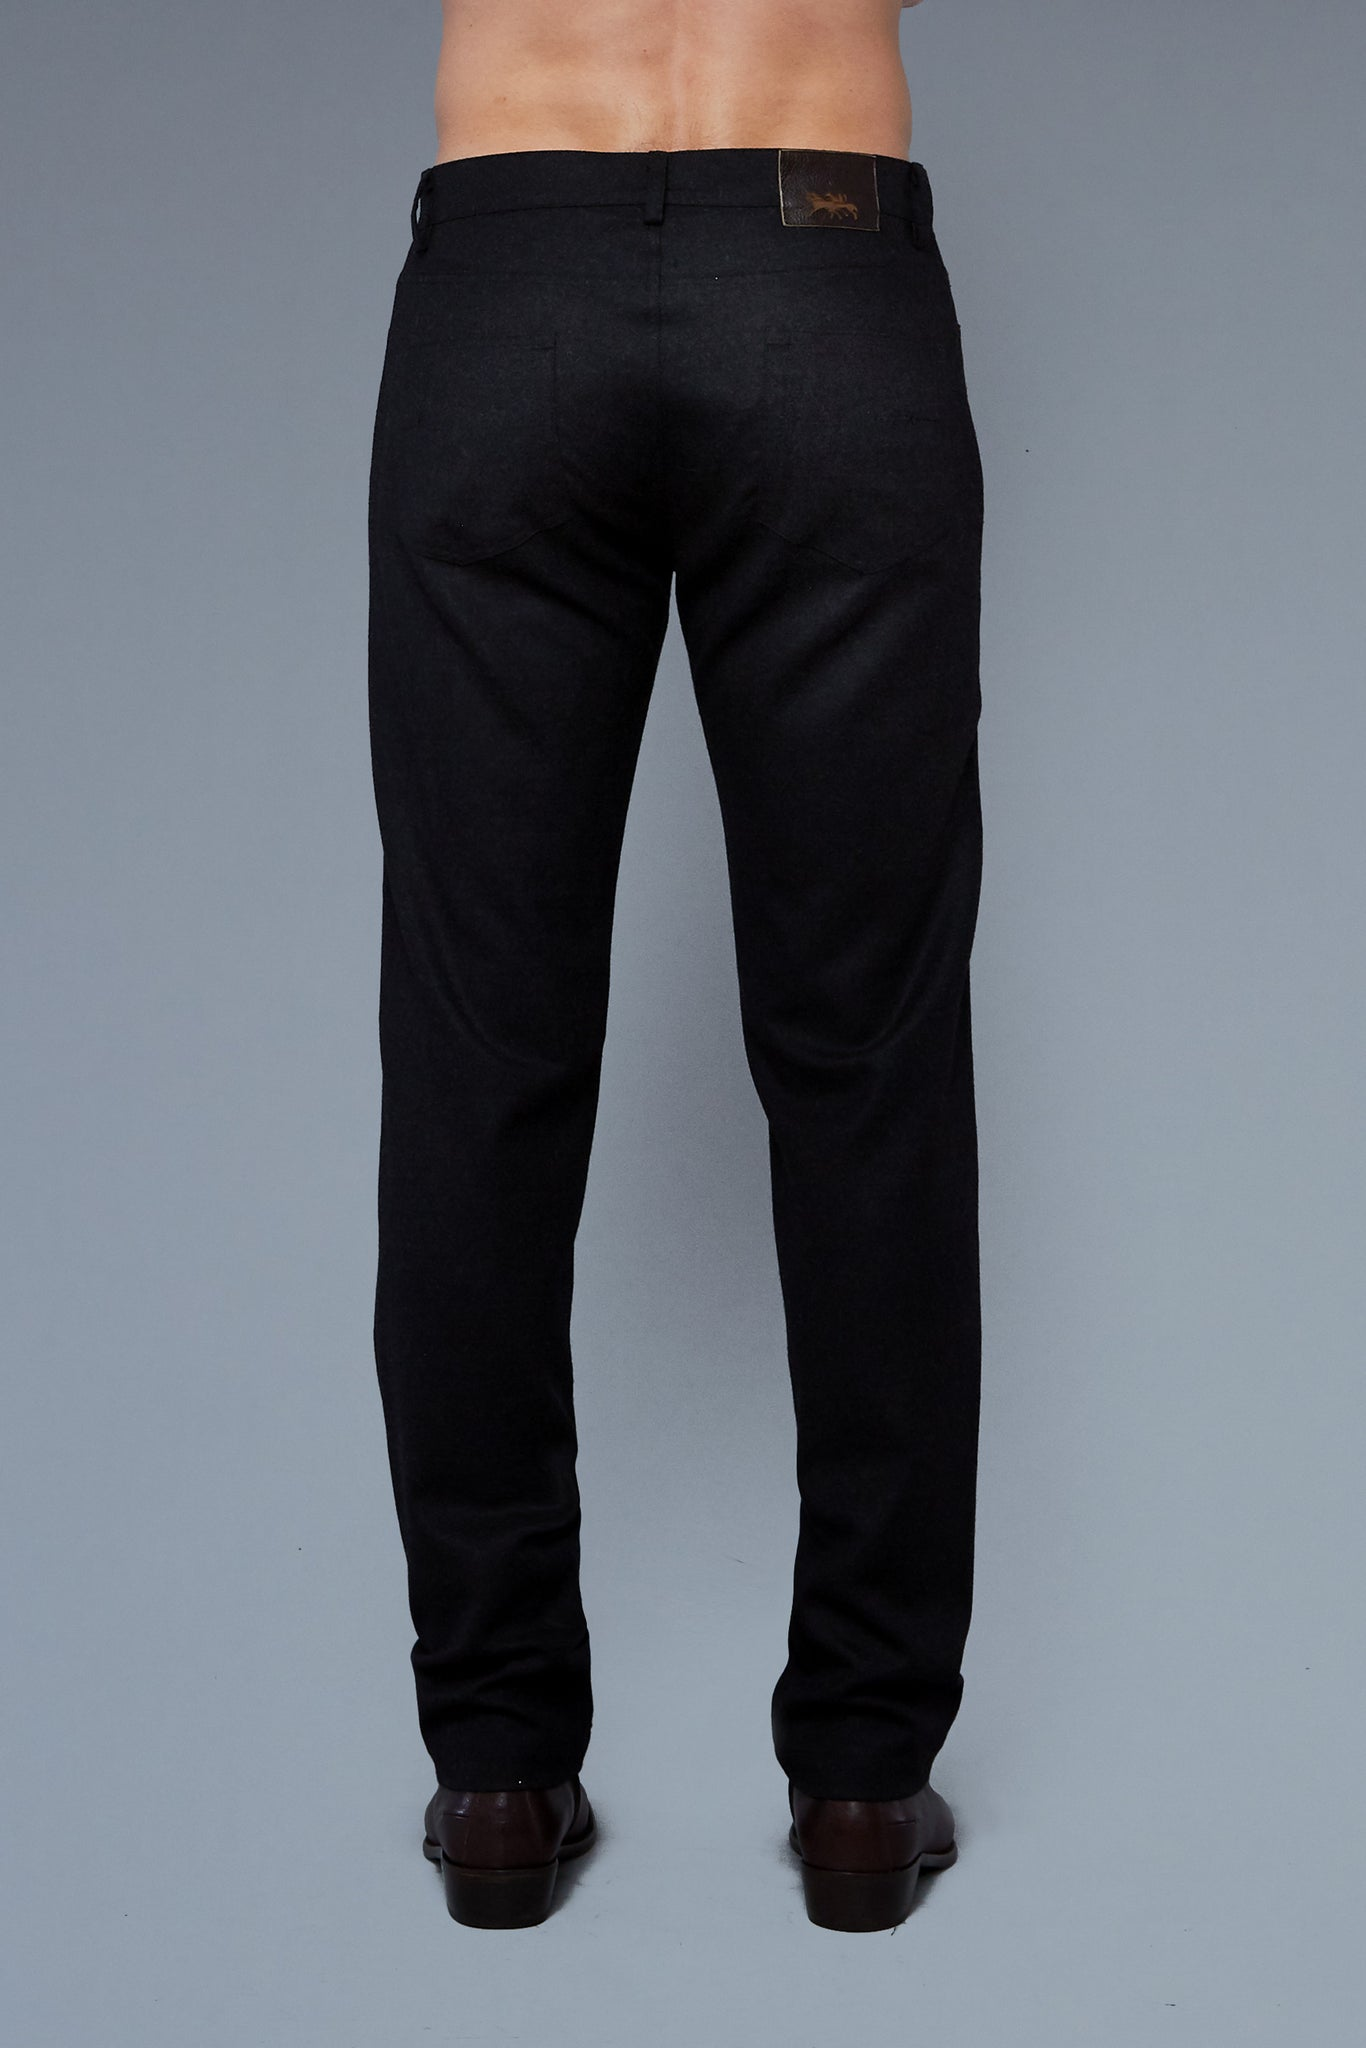 5 Pocket Pants | Charcoal